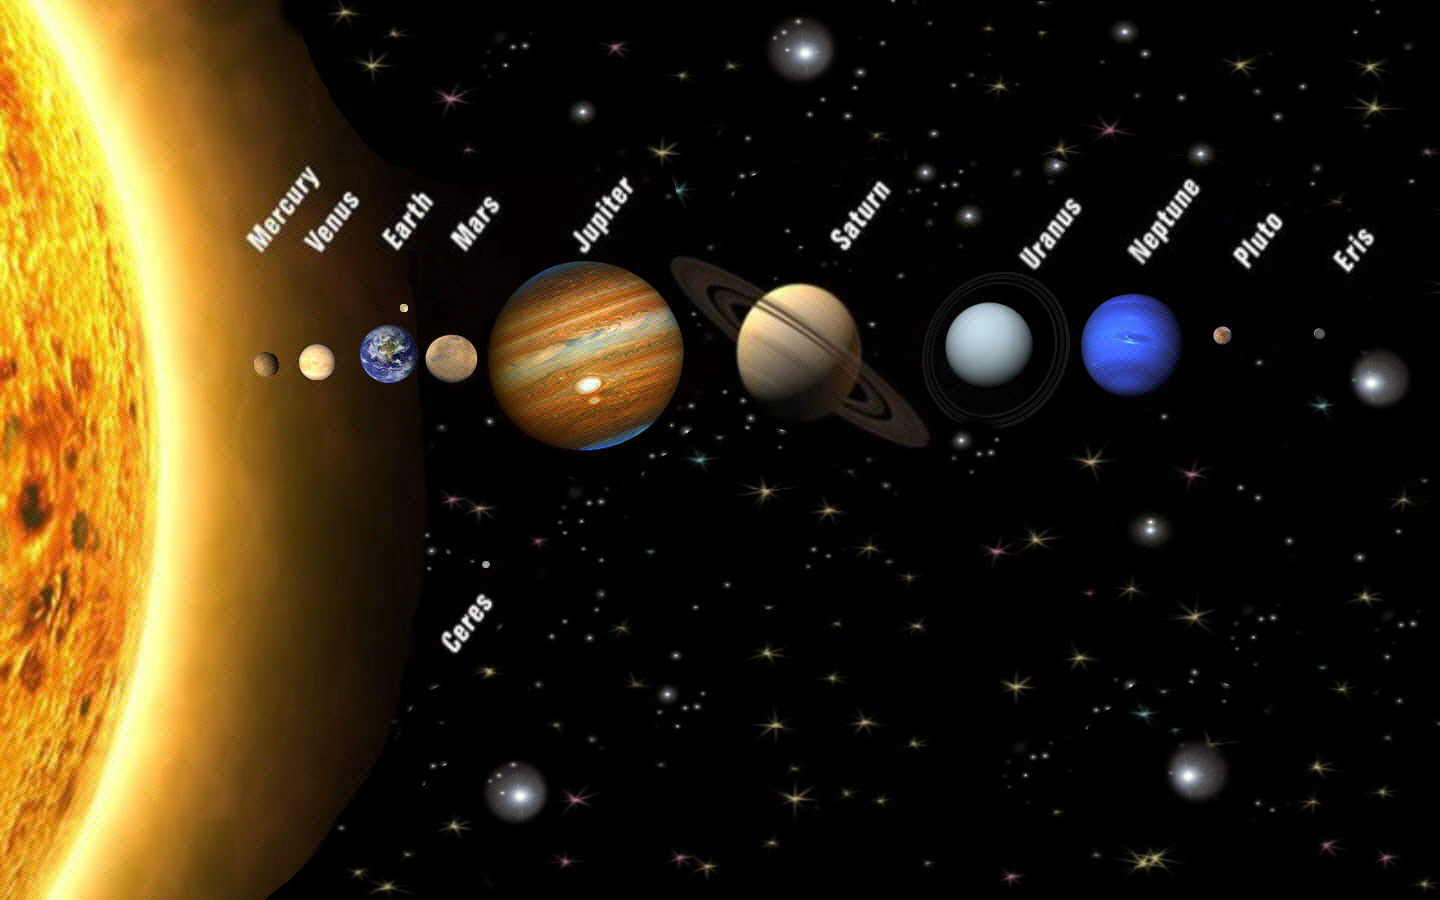 artists concept our solar system solar system - HD1440×900